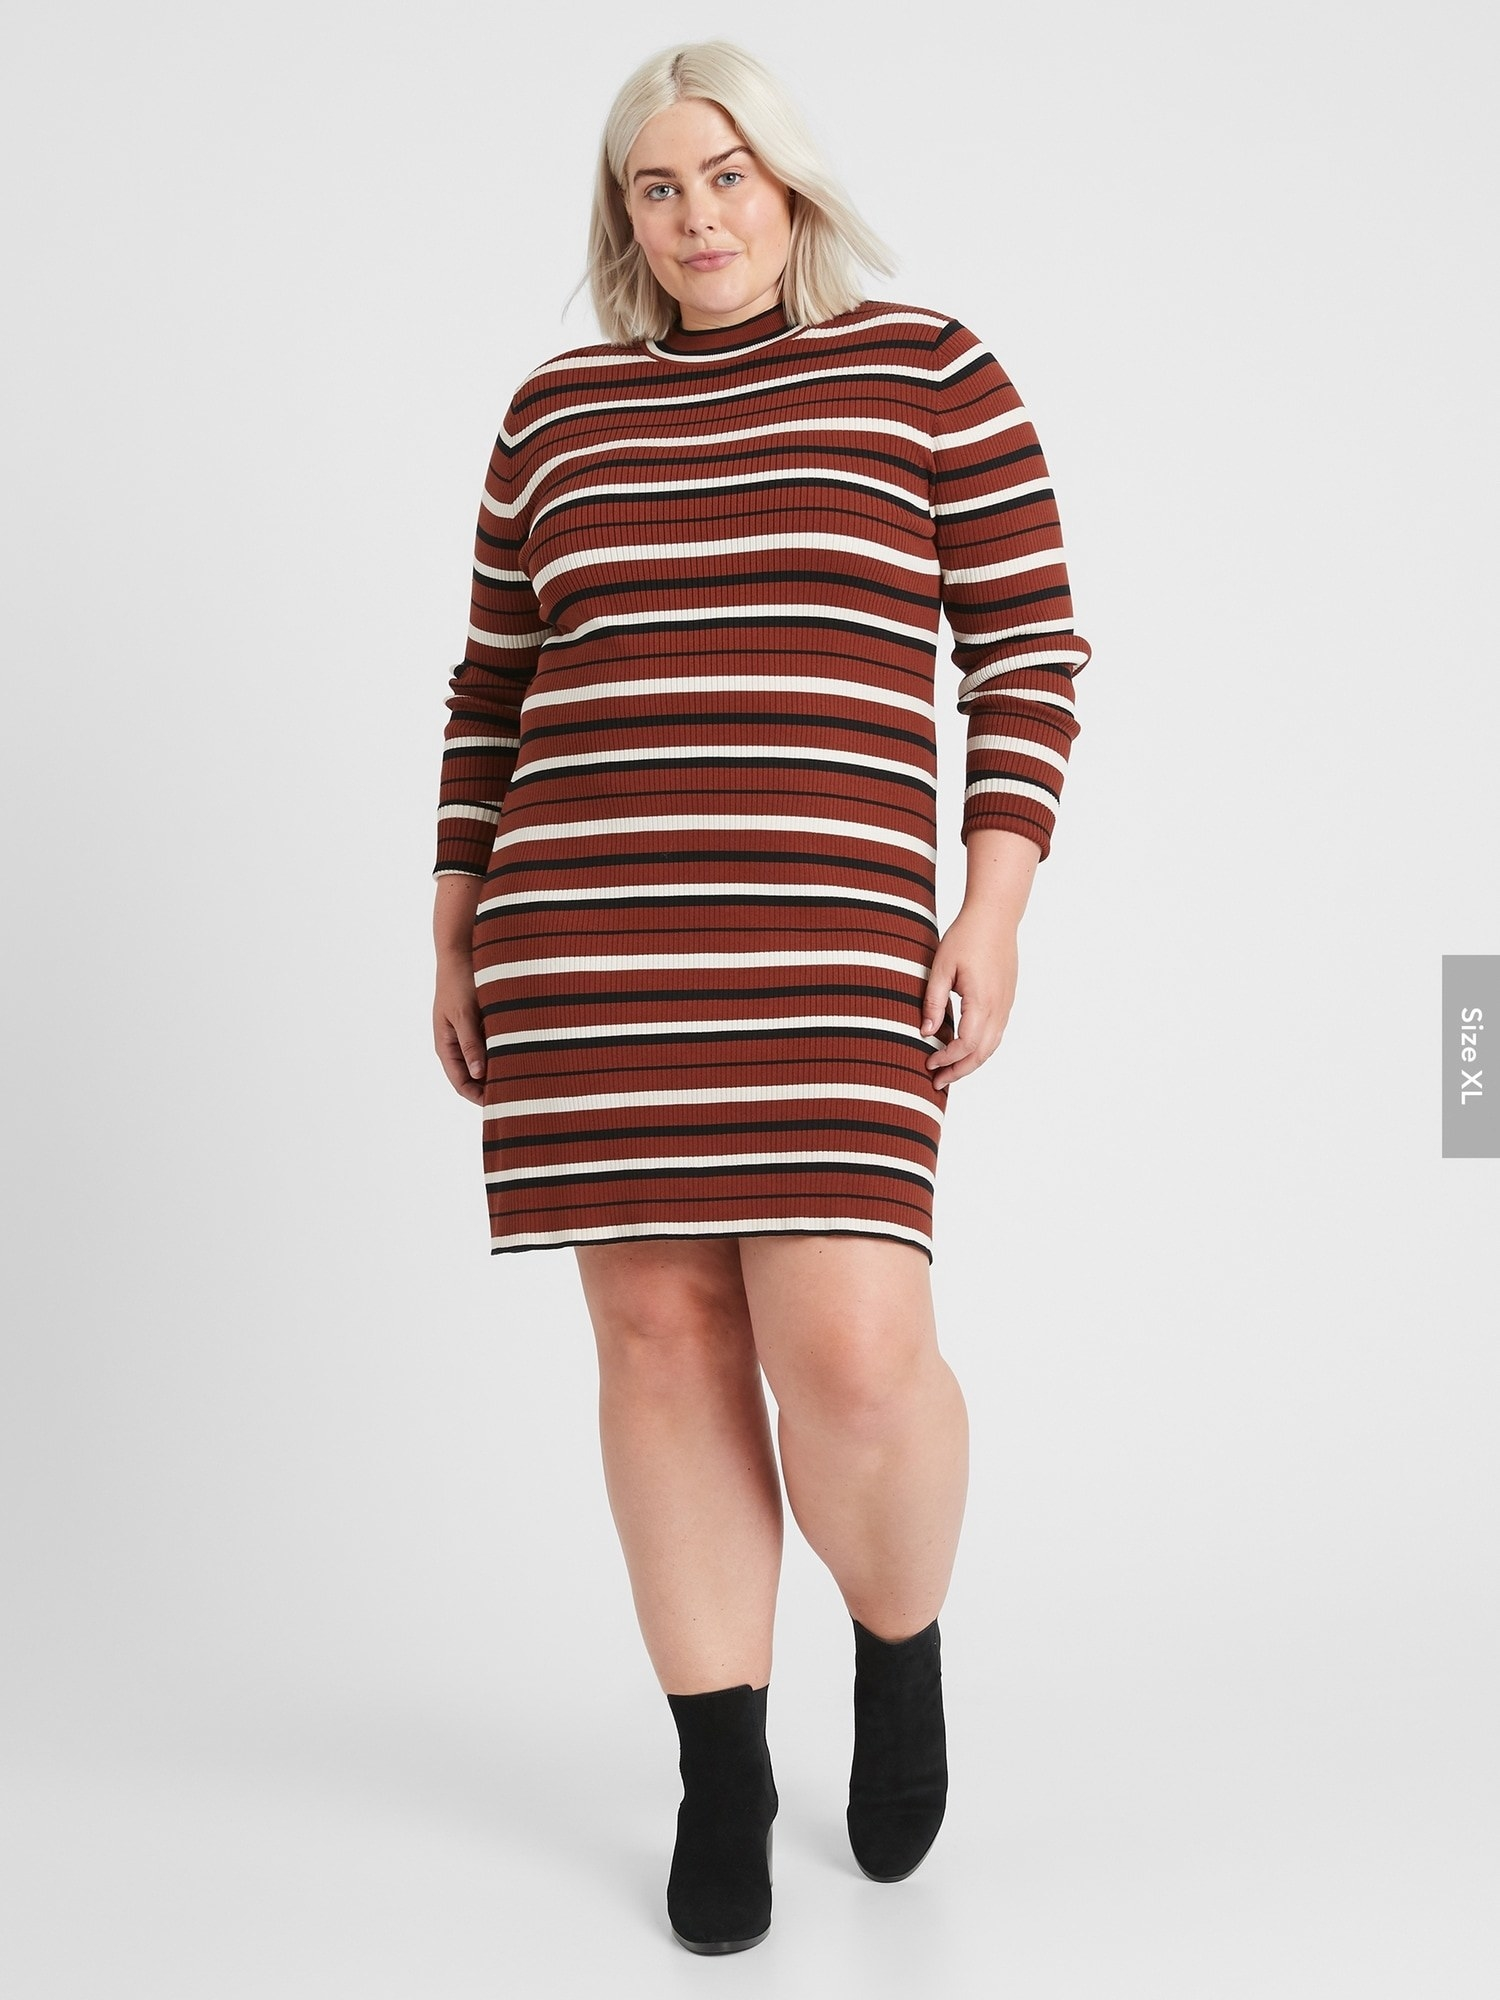 Model wearing the mid-thigh length long-sleeved bodycon dress with orange, black, and white horizontal stripes